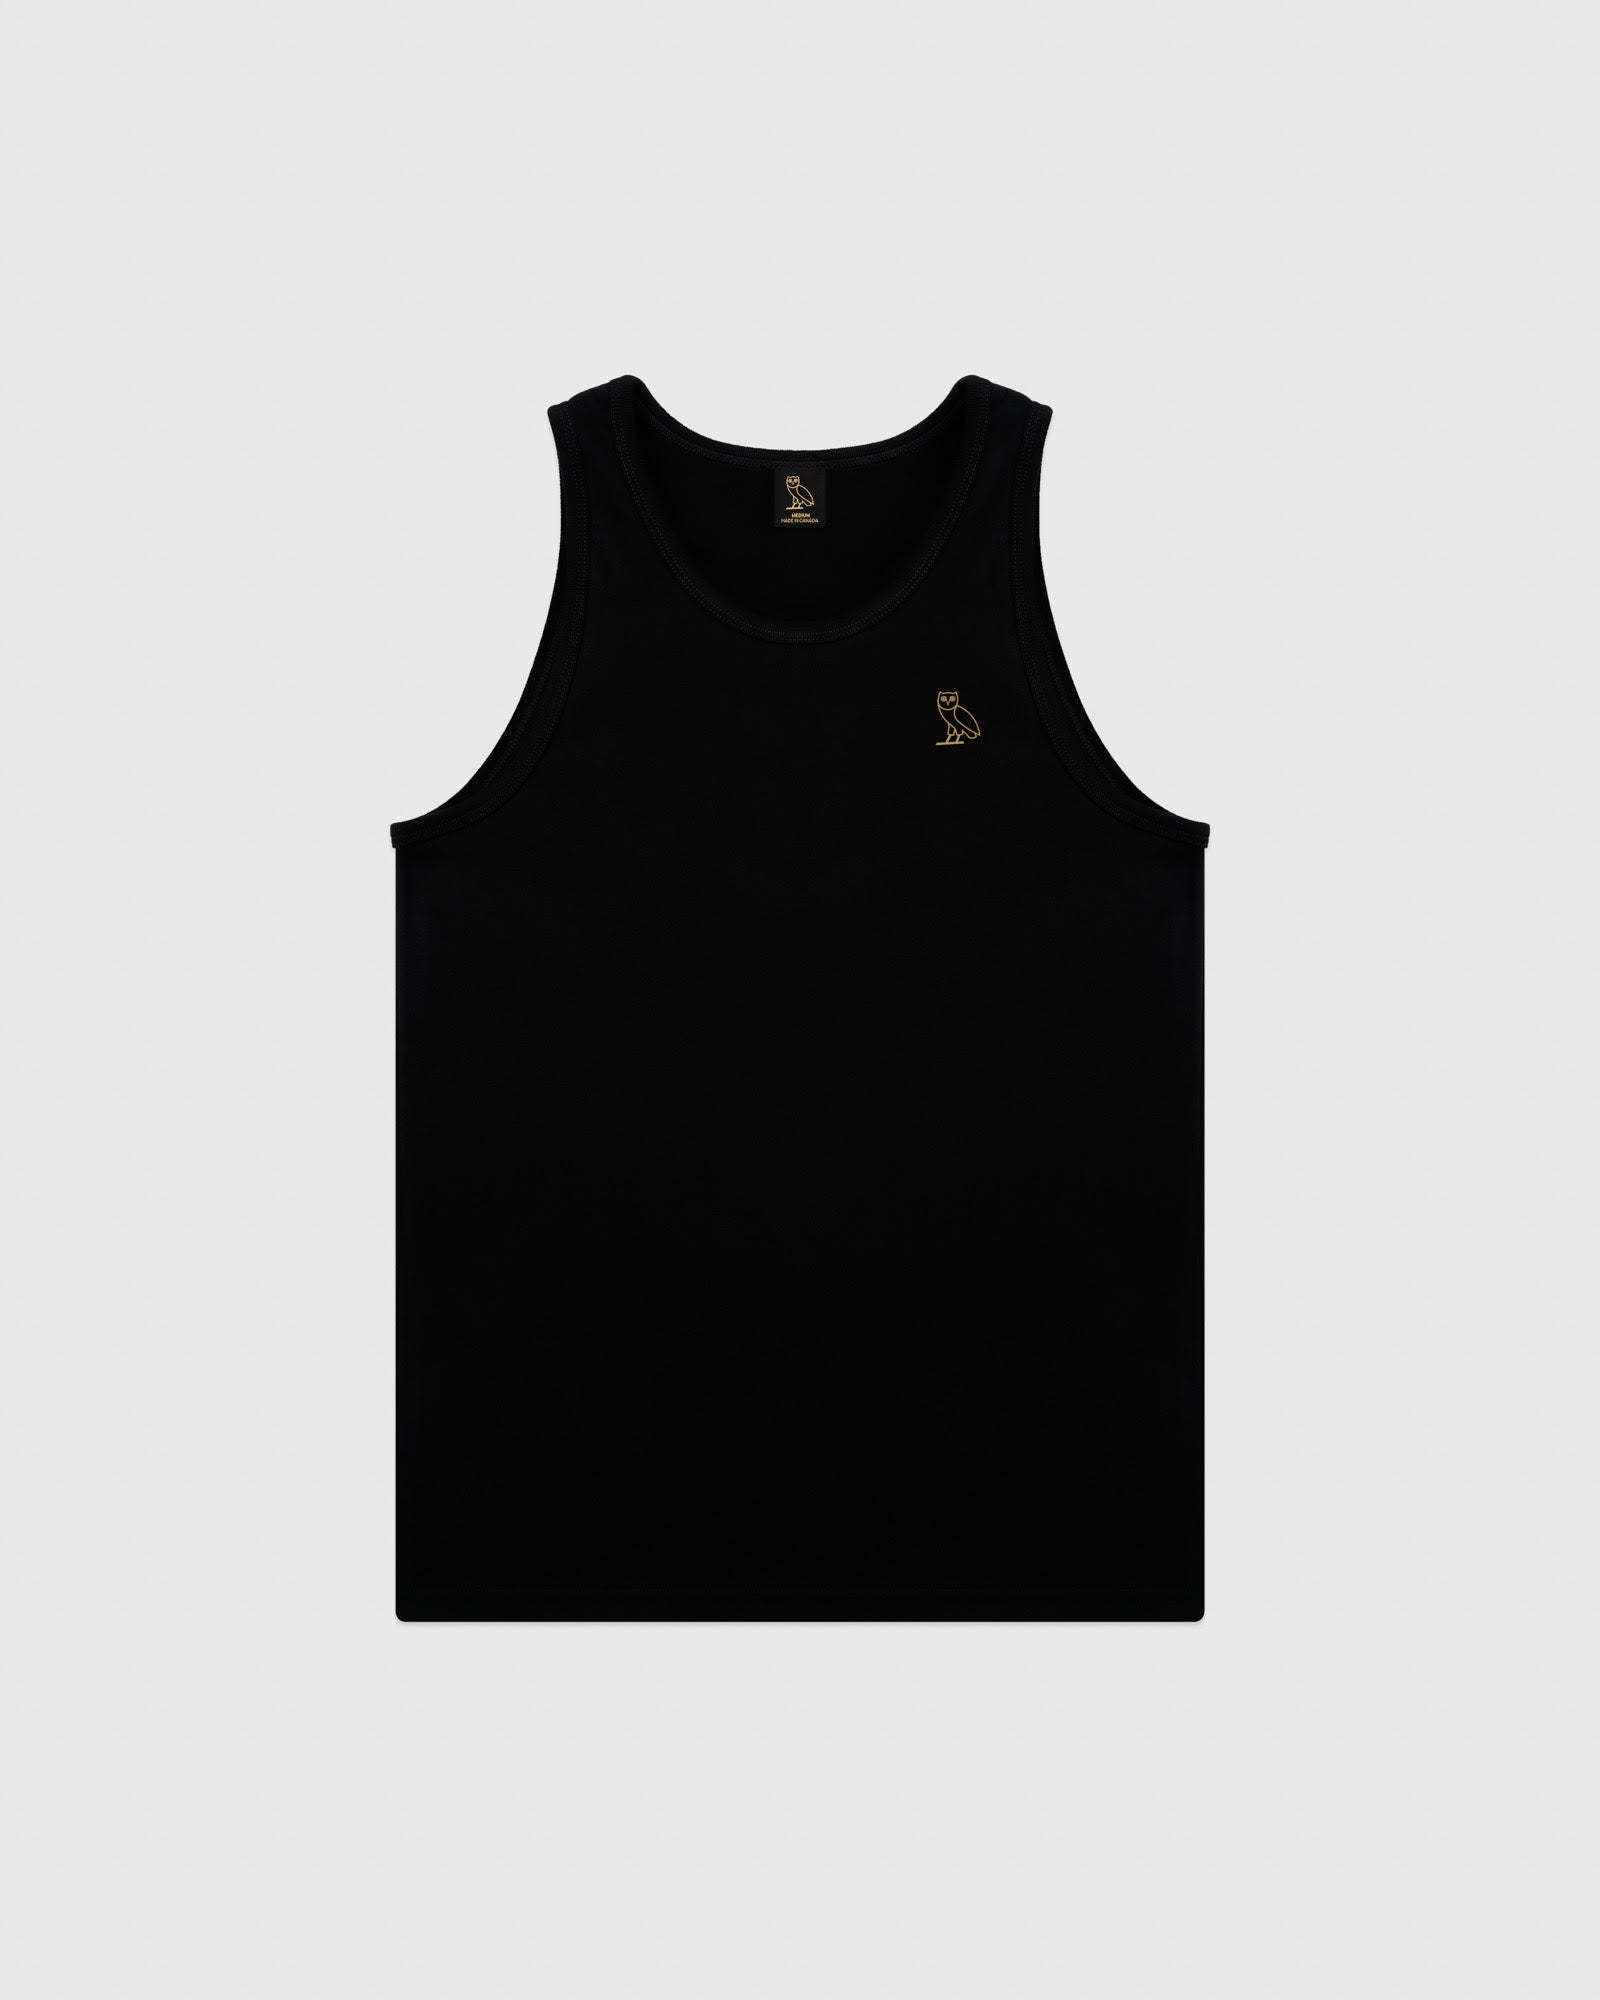 ESSENTIAL OWL TANK TOP - BLACK